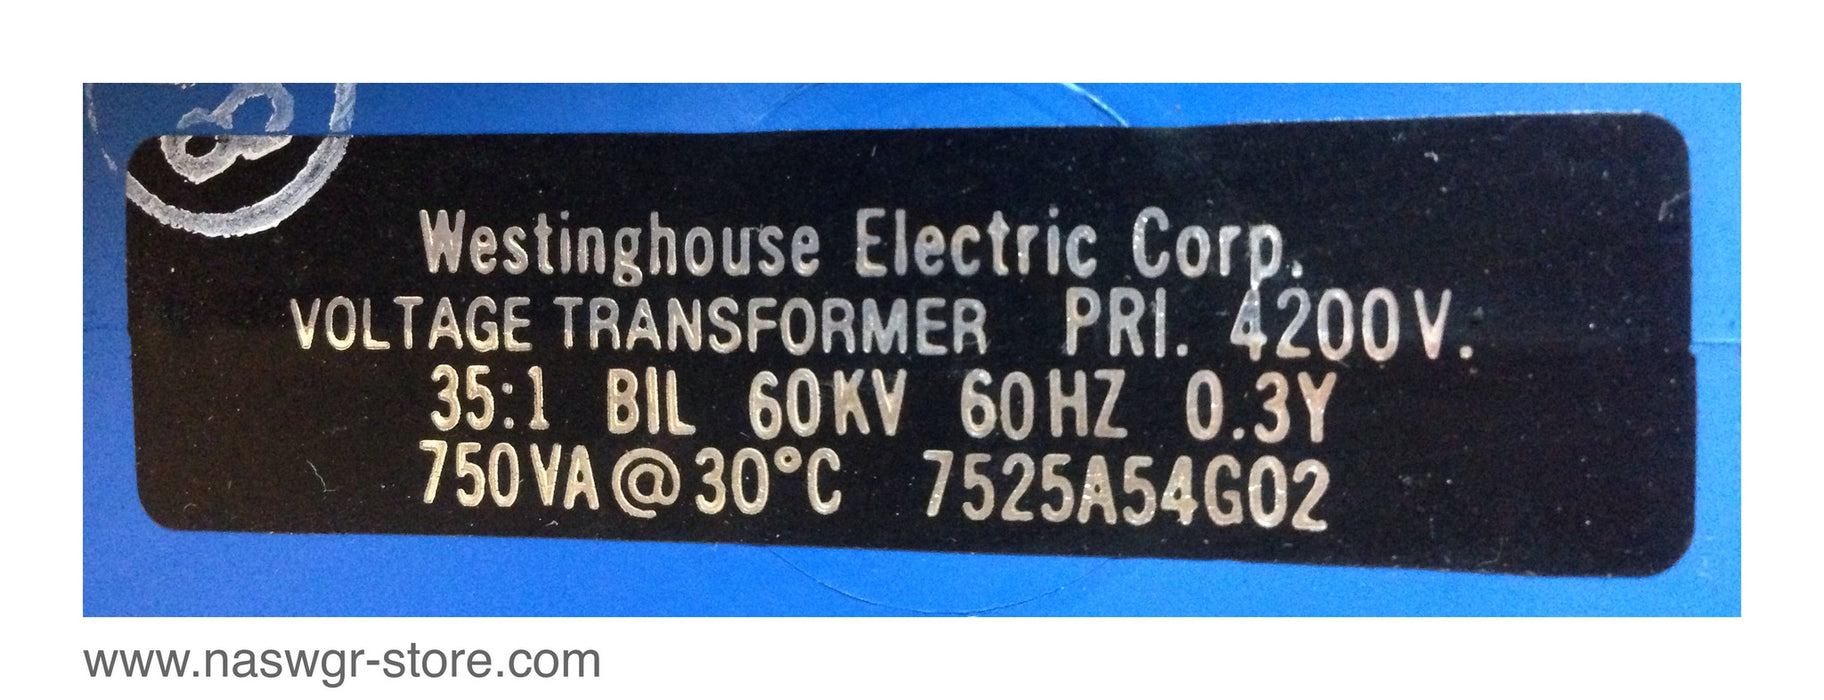 Westinghouse 7525A54G02 Voltage Transformer